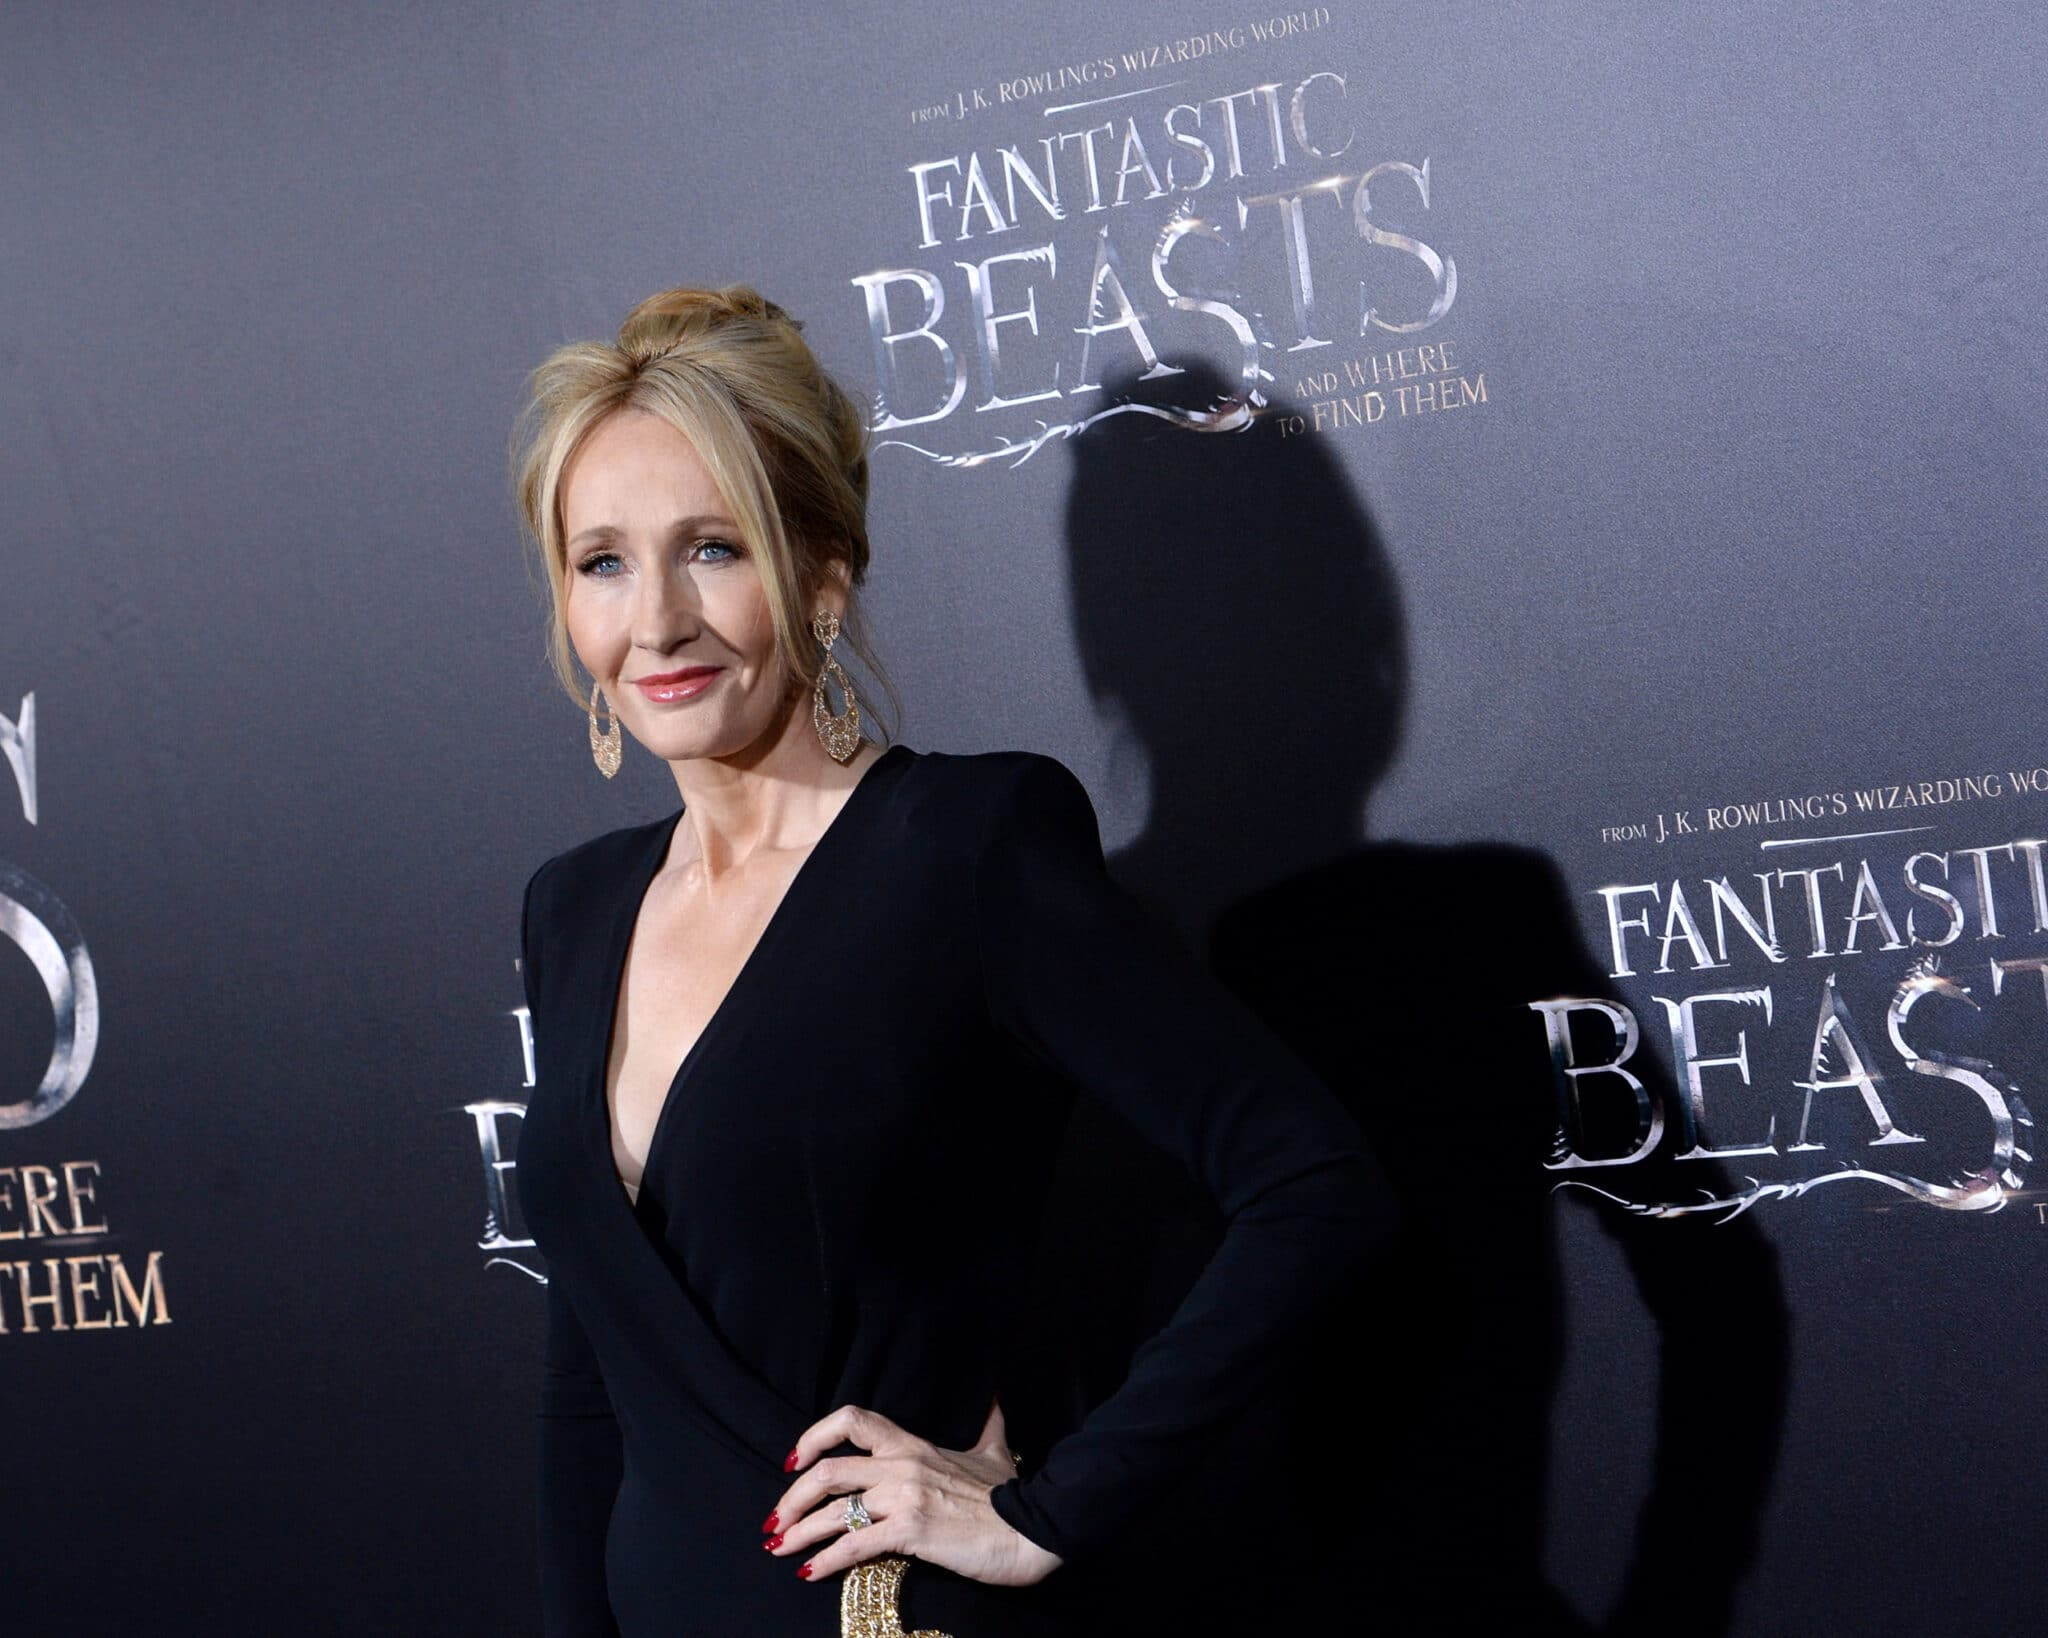 JK Rowling attends the Fantastic Beasts And Where To Find Them world premiere in 2016